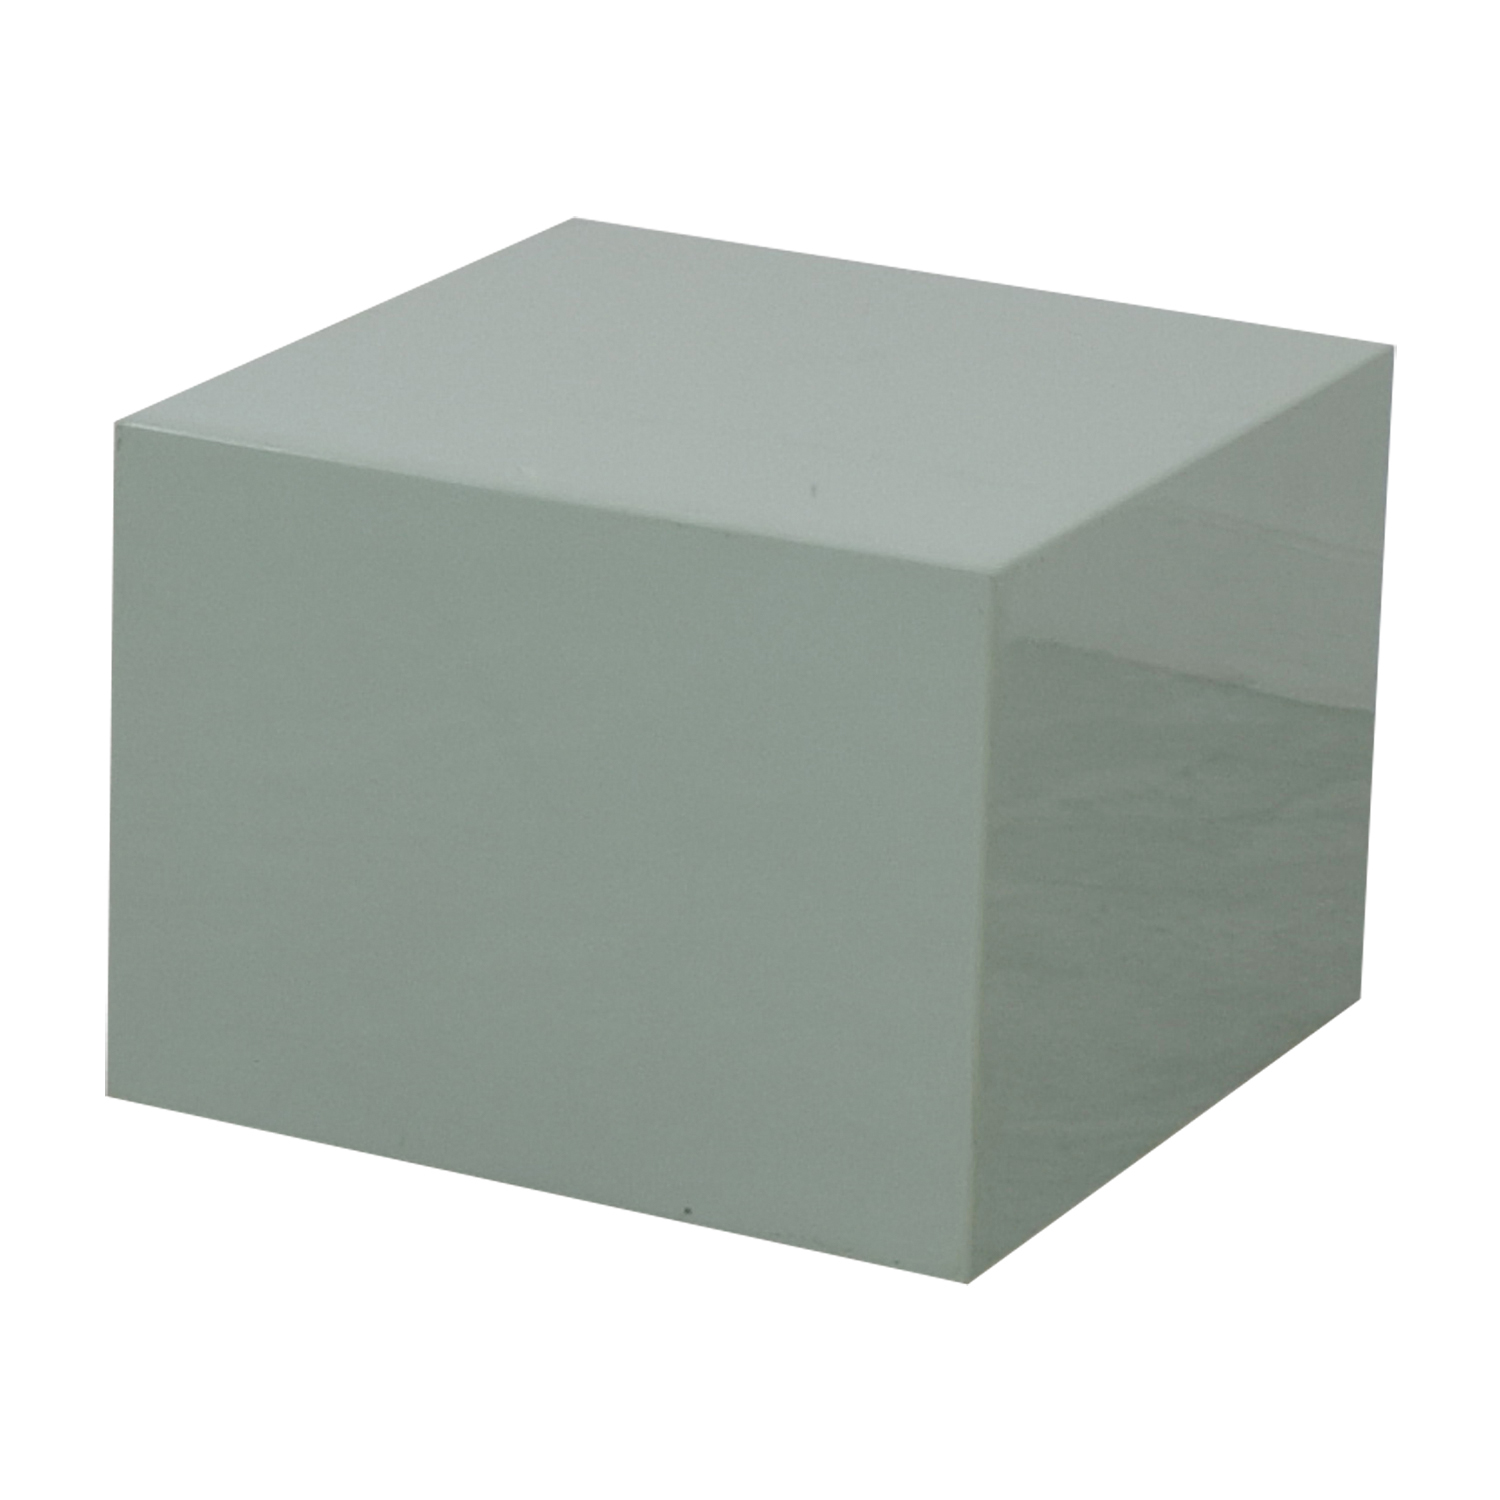 CB2 CB2 City Slicker Mint Green Side Table dimensions